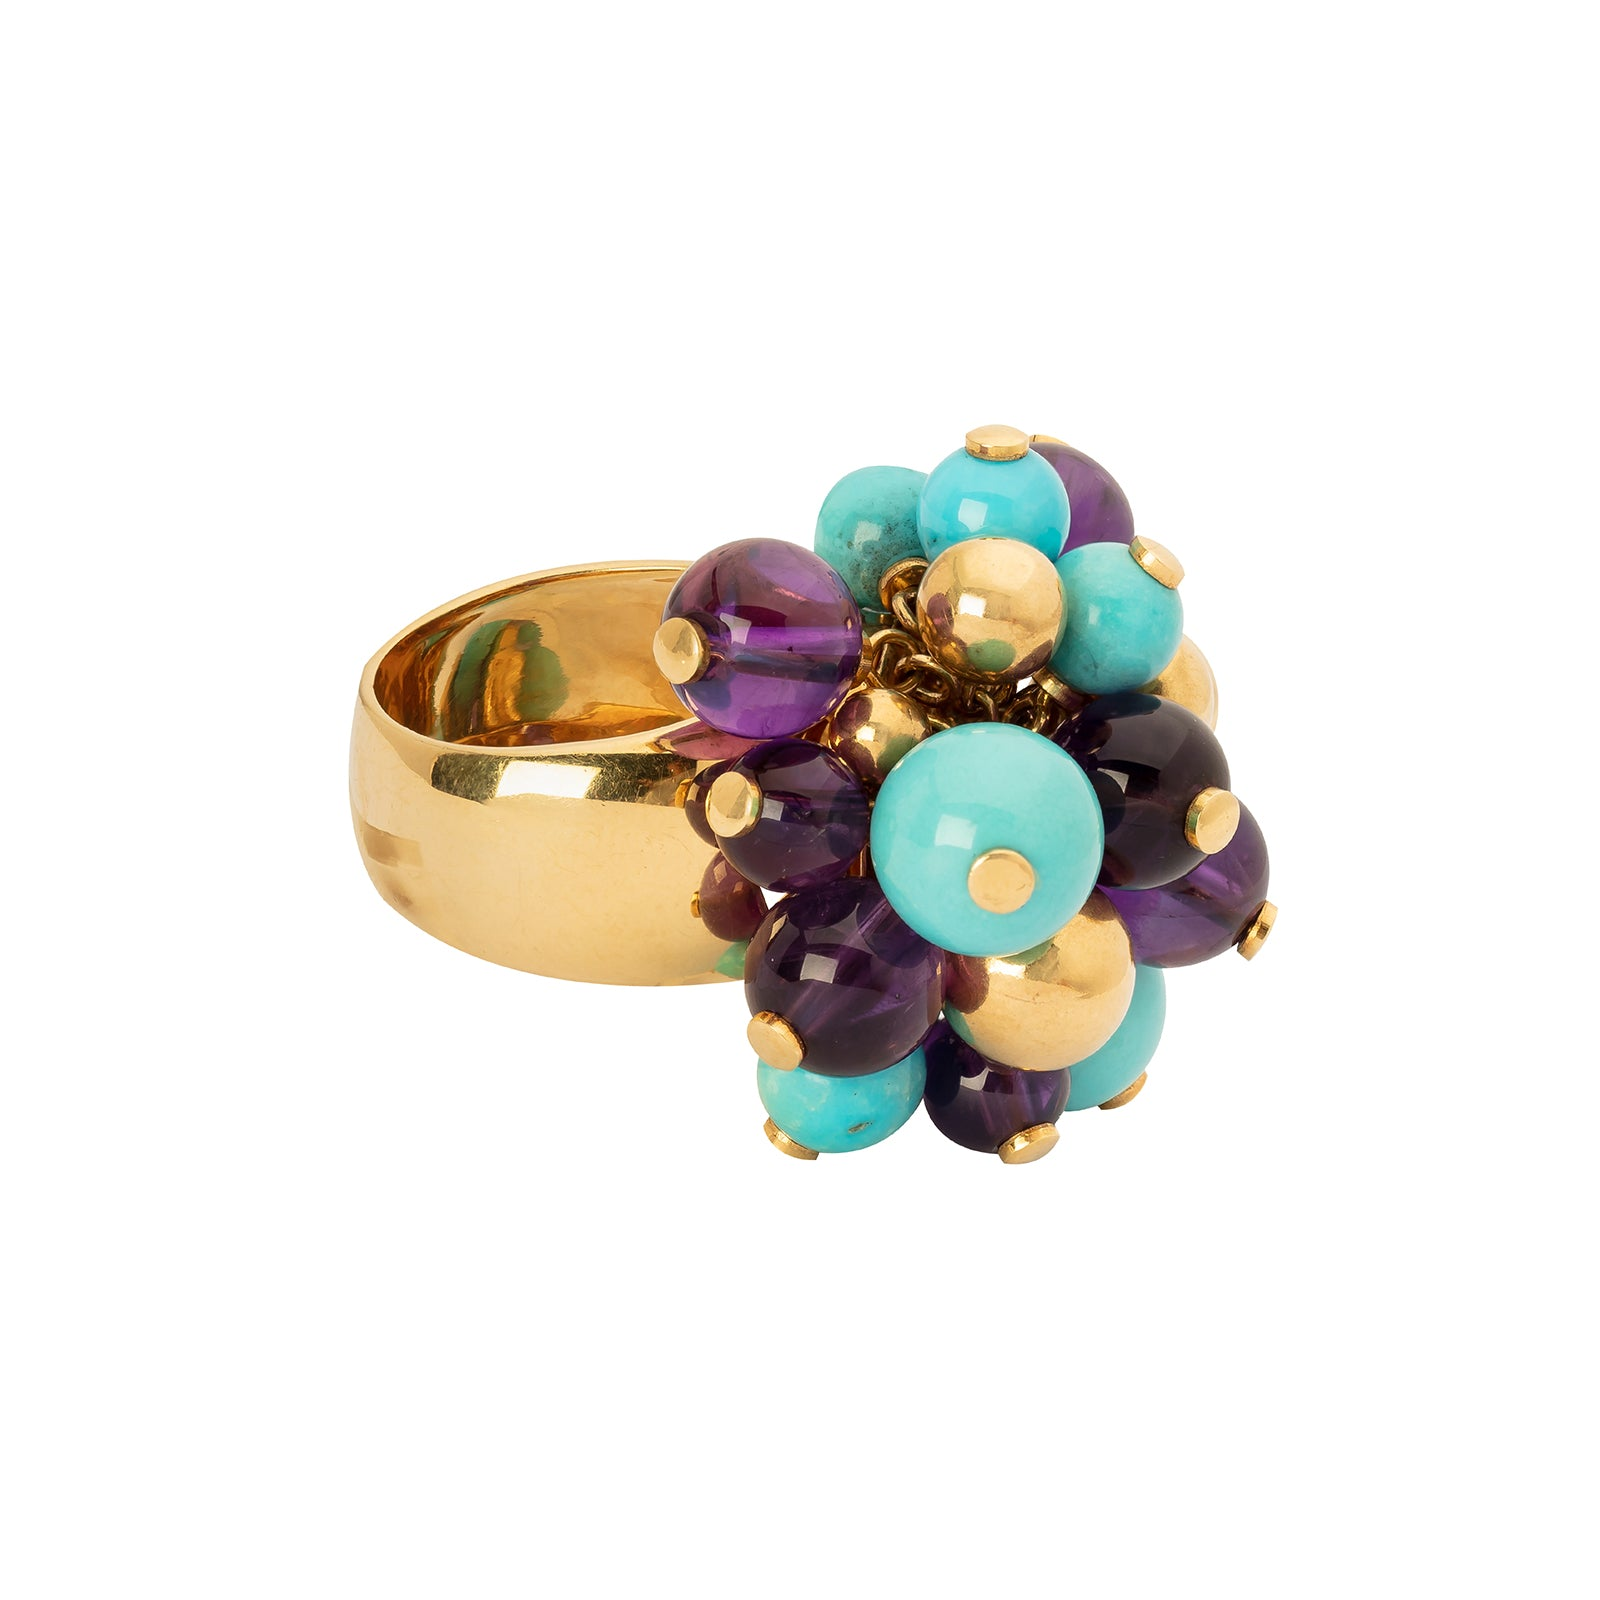 Antique & Vintage Jewelry Turquoise & Amethyst Bead Tassel Ring - Rings - Broken English Jewelry